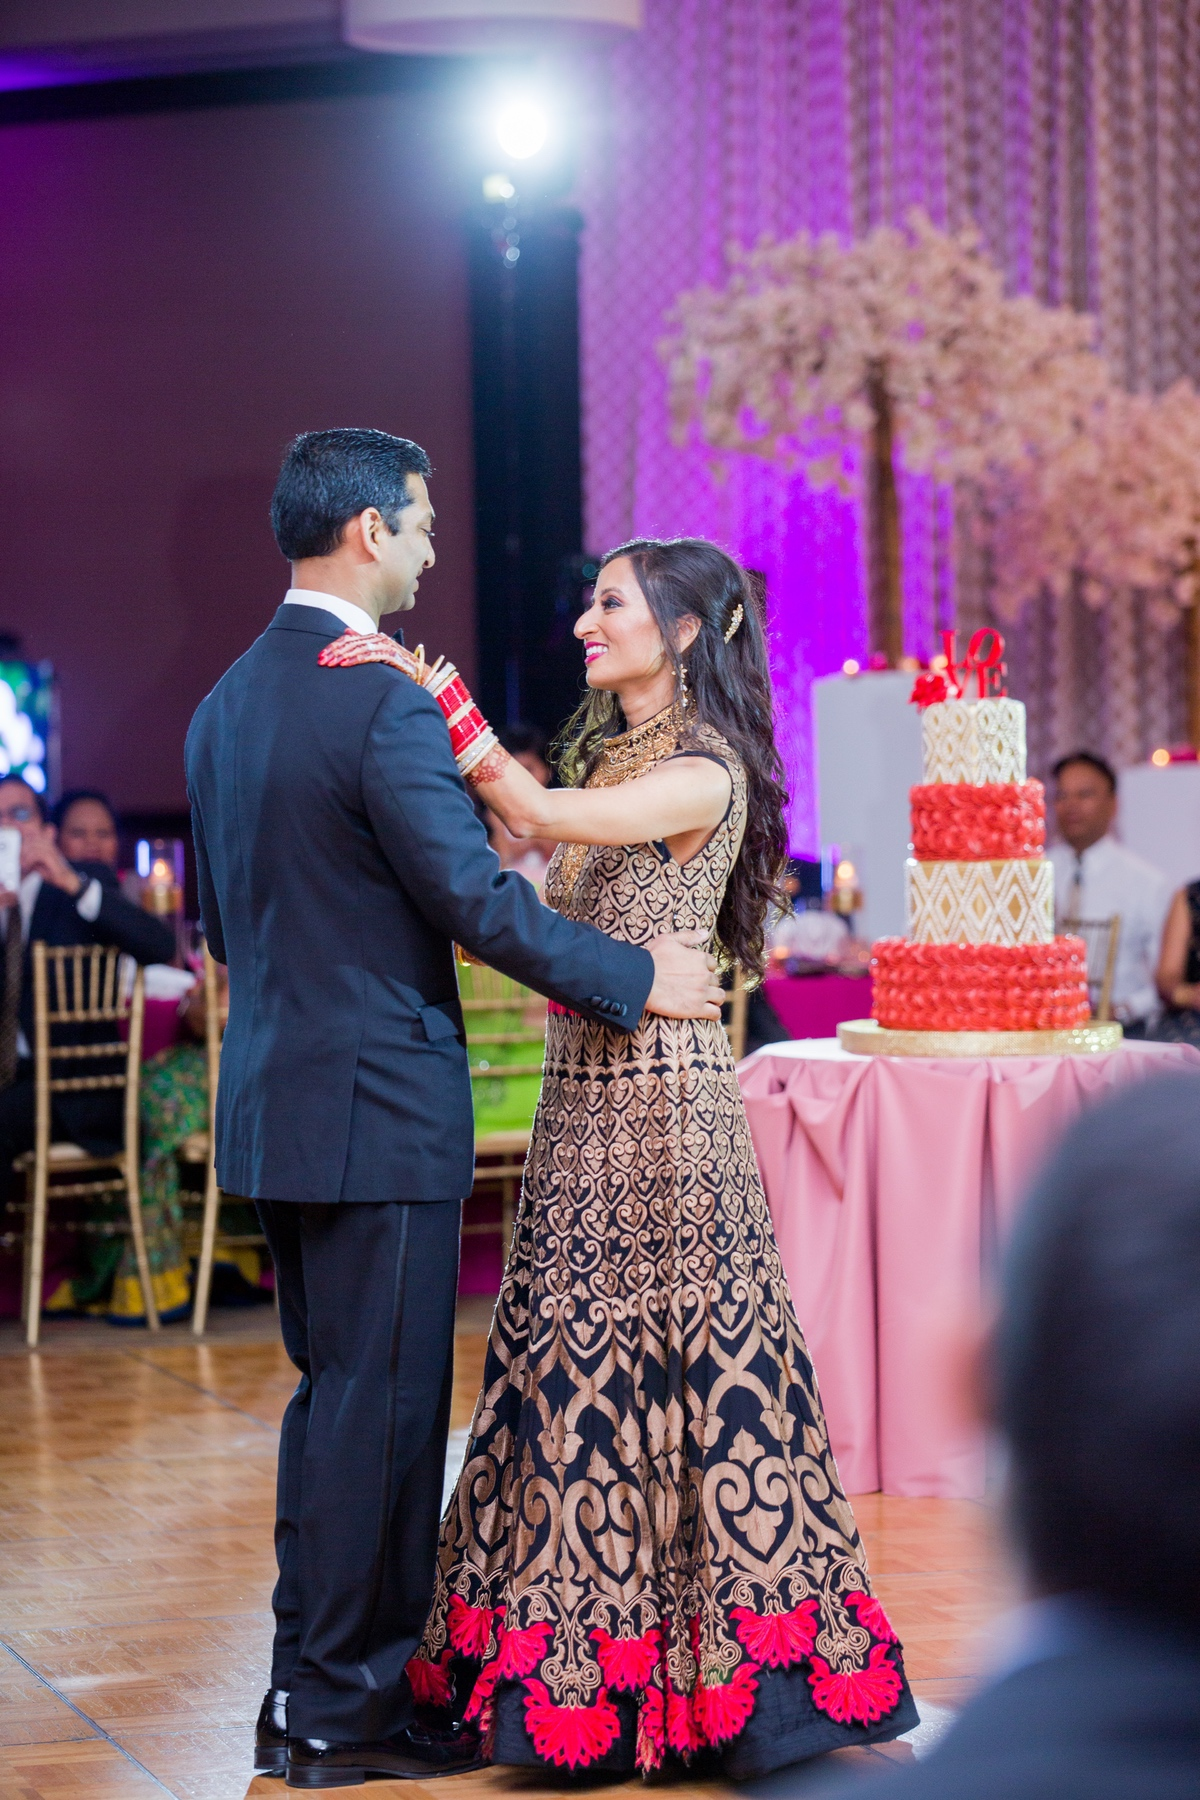 Le Cape Weddings - South Asian Wedding - Chicago Wedding Photographer P&V-67-2.jpg